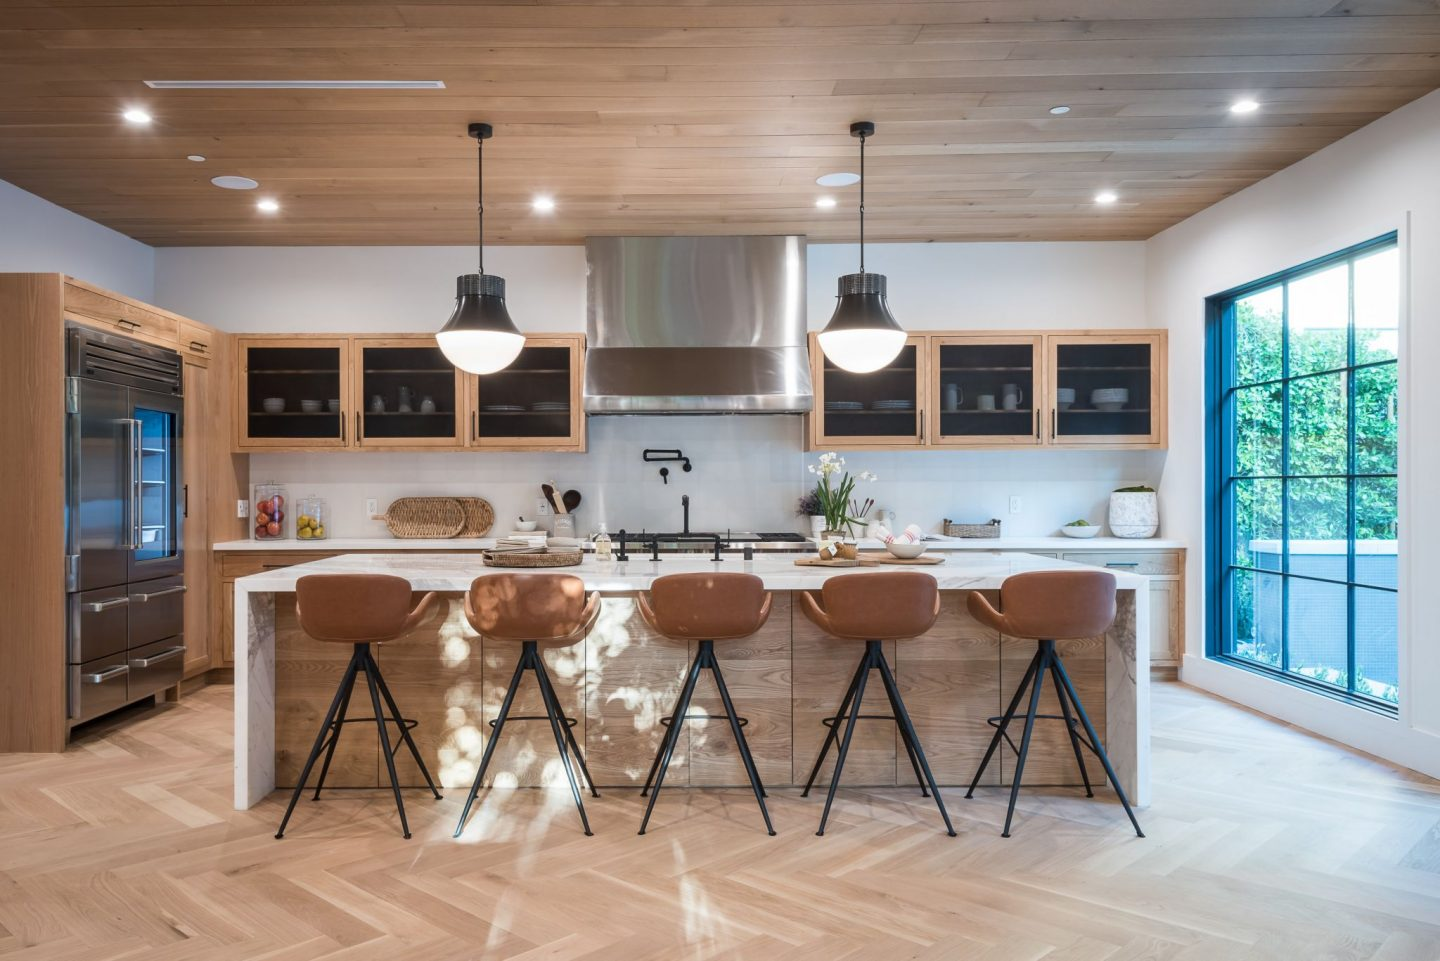 5 ways to fall back in love with your kitchen